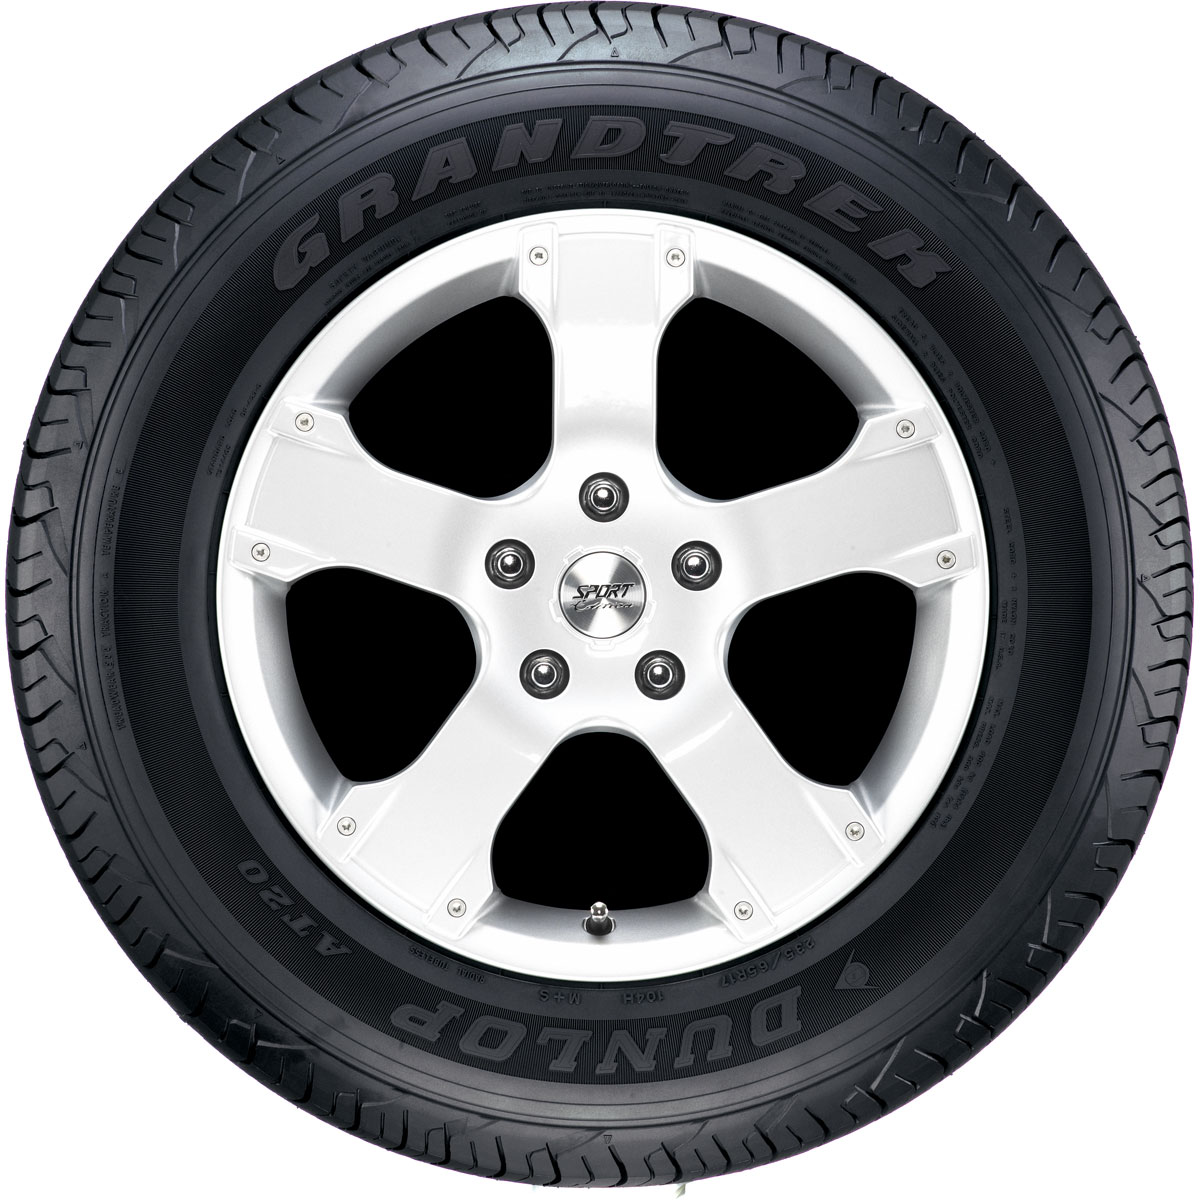 PNG Tire - 58531